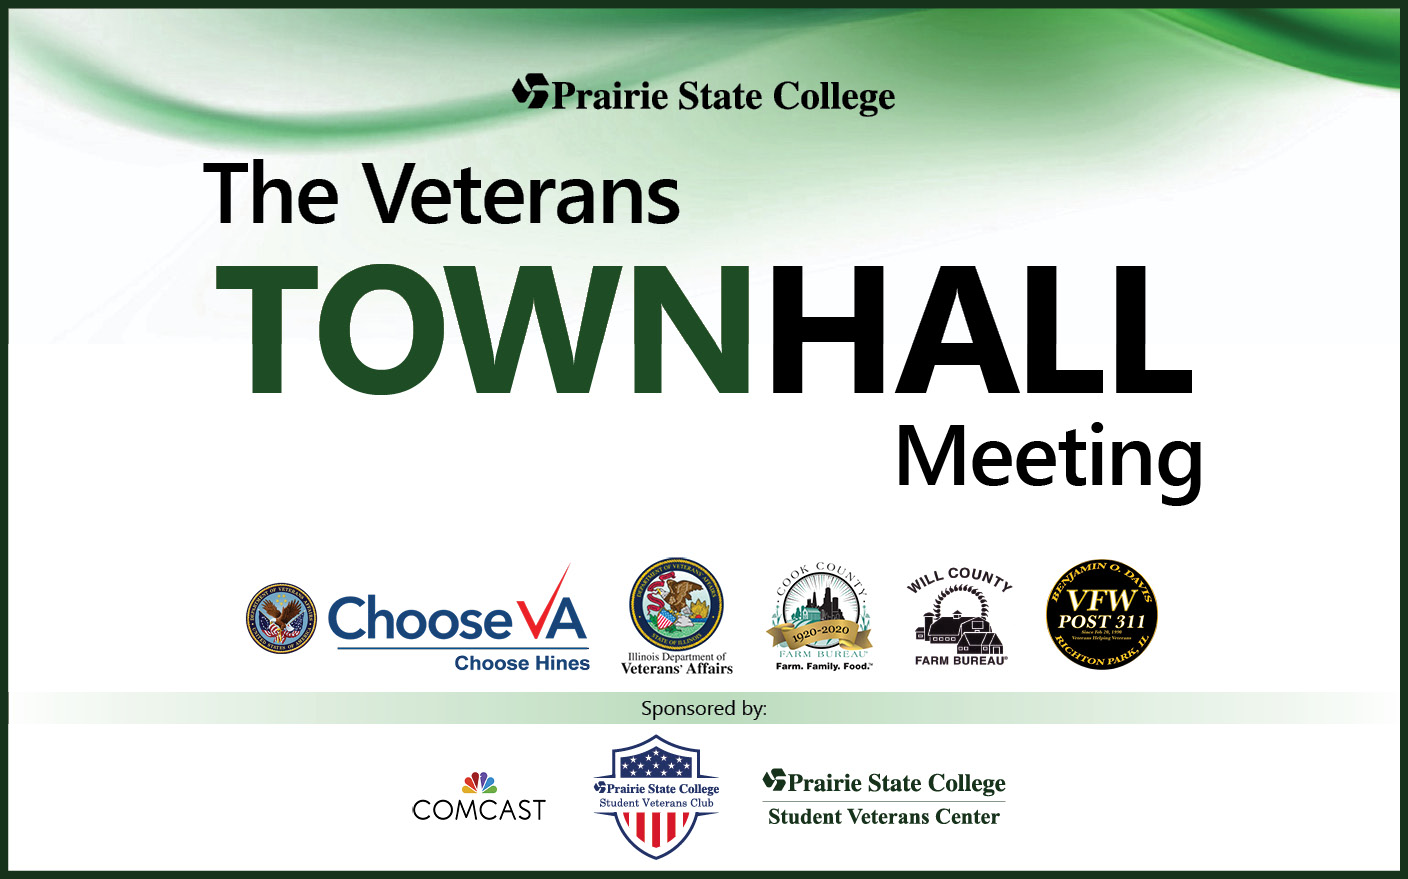 The Veterans Townhall Meeting